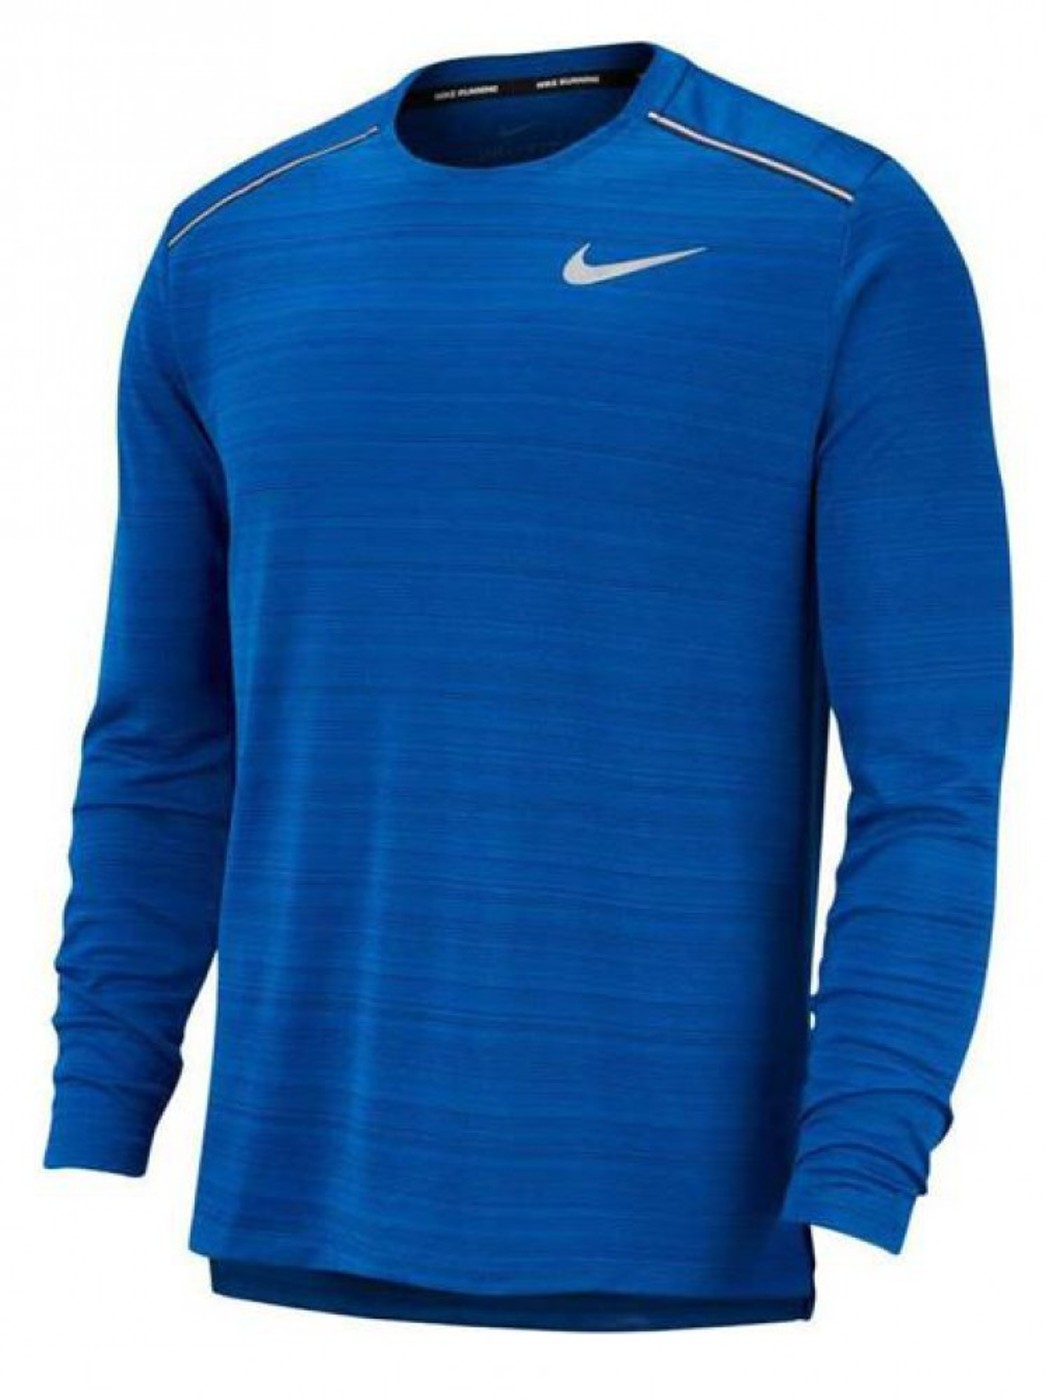 Nike Dri-FIT Miler Long- - Herren